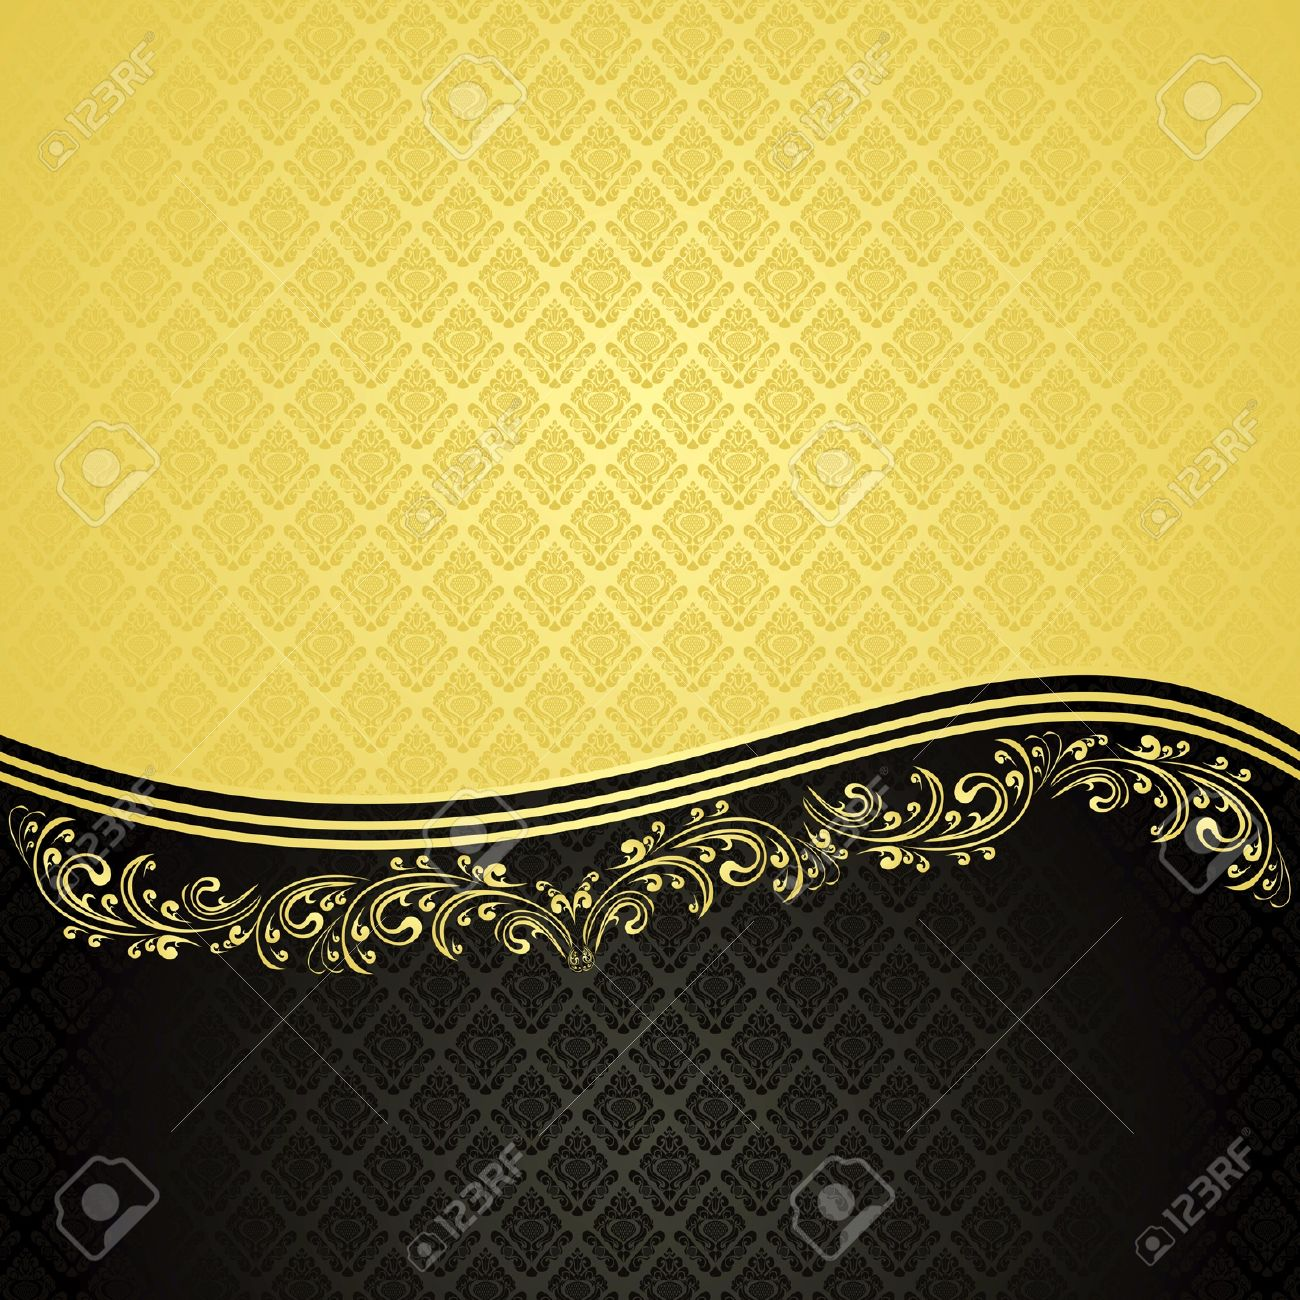 Luxury Background decorated a Vintage ornament : gold and black (EPS10) - 13387501